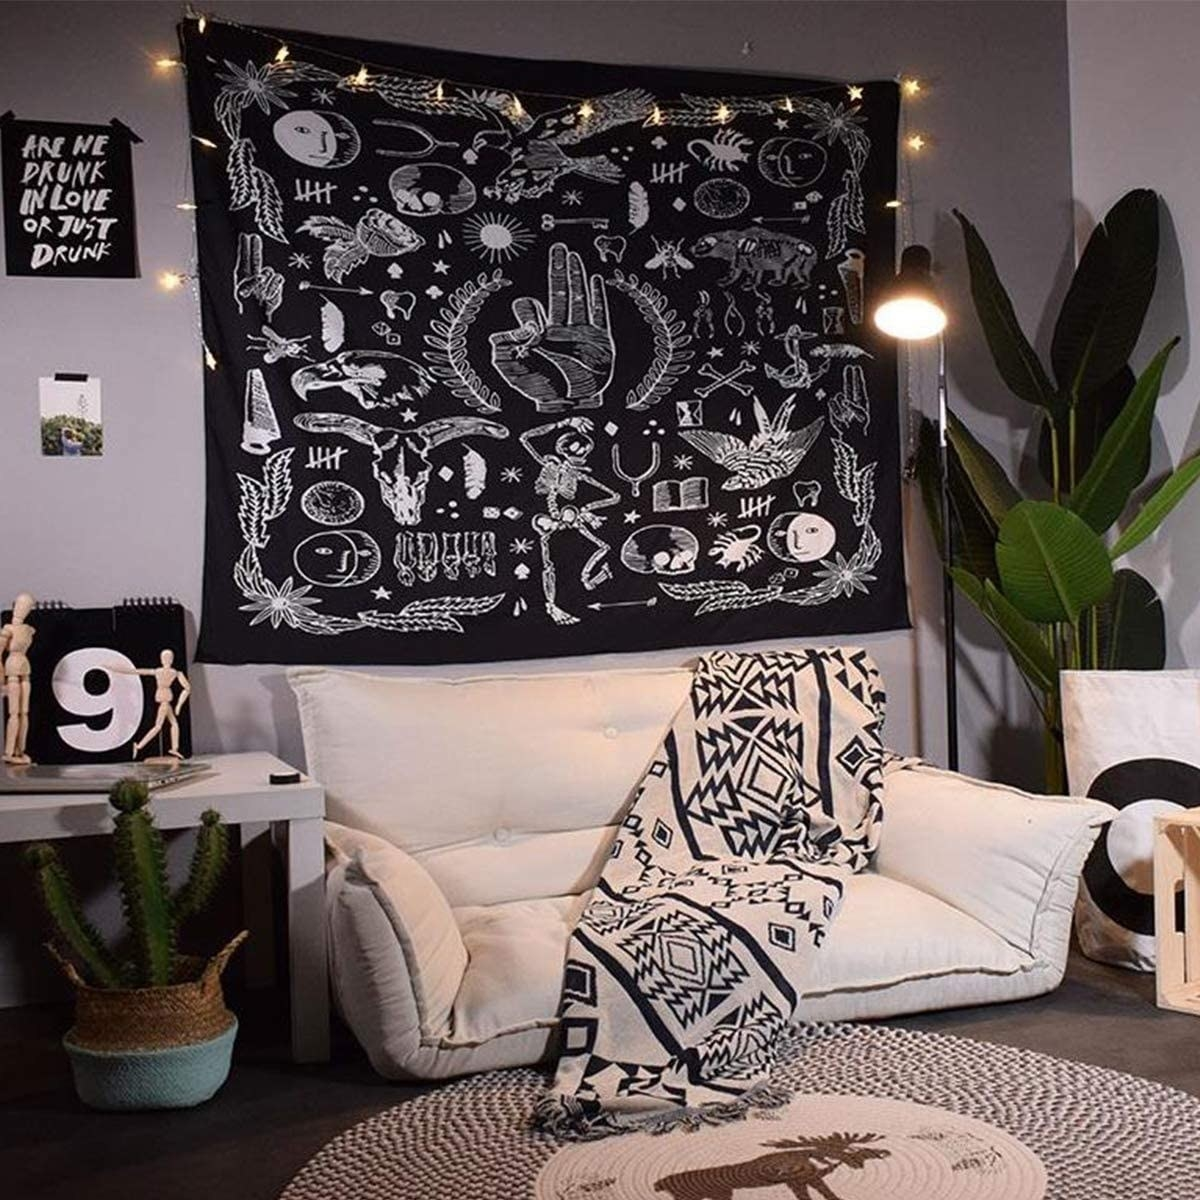 living room couch with black and white tapestry hung up on the wall featuring skulls and other gothic symbols